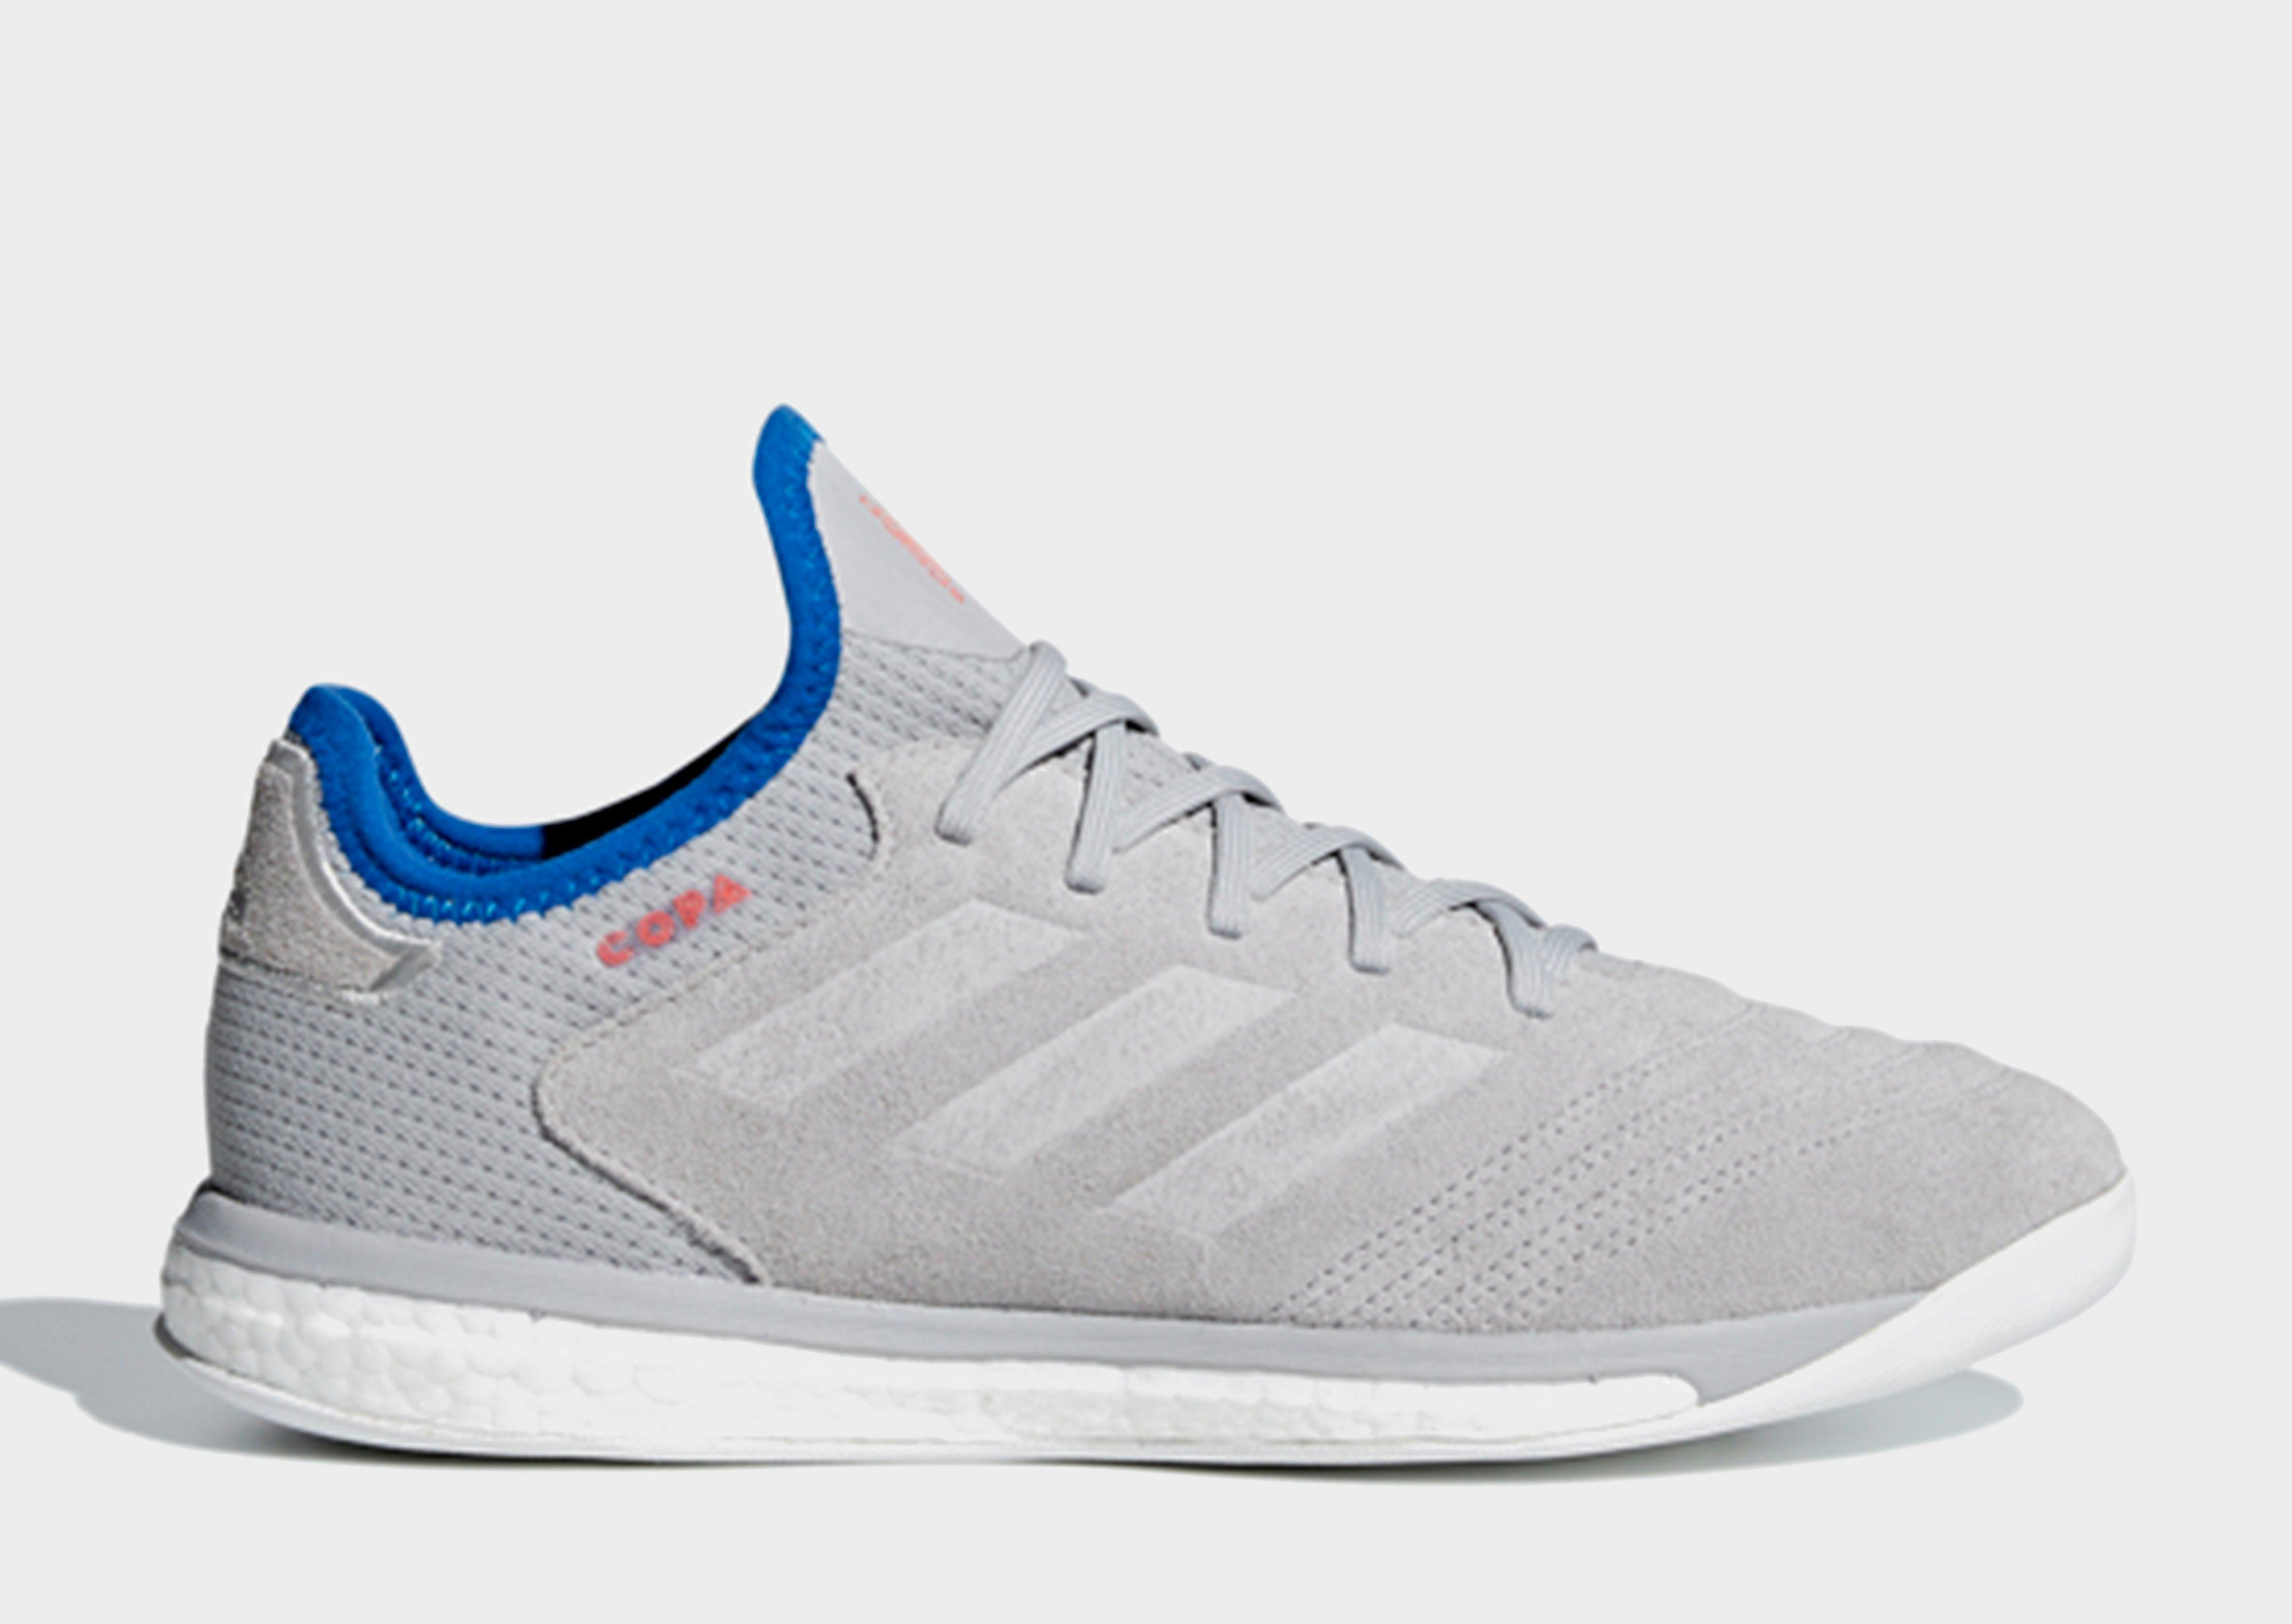 new product 57064 e855f Adidas Copa Tango 18.1 Trainers in Gray for Men - Lyst